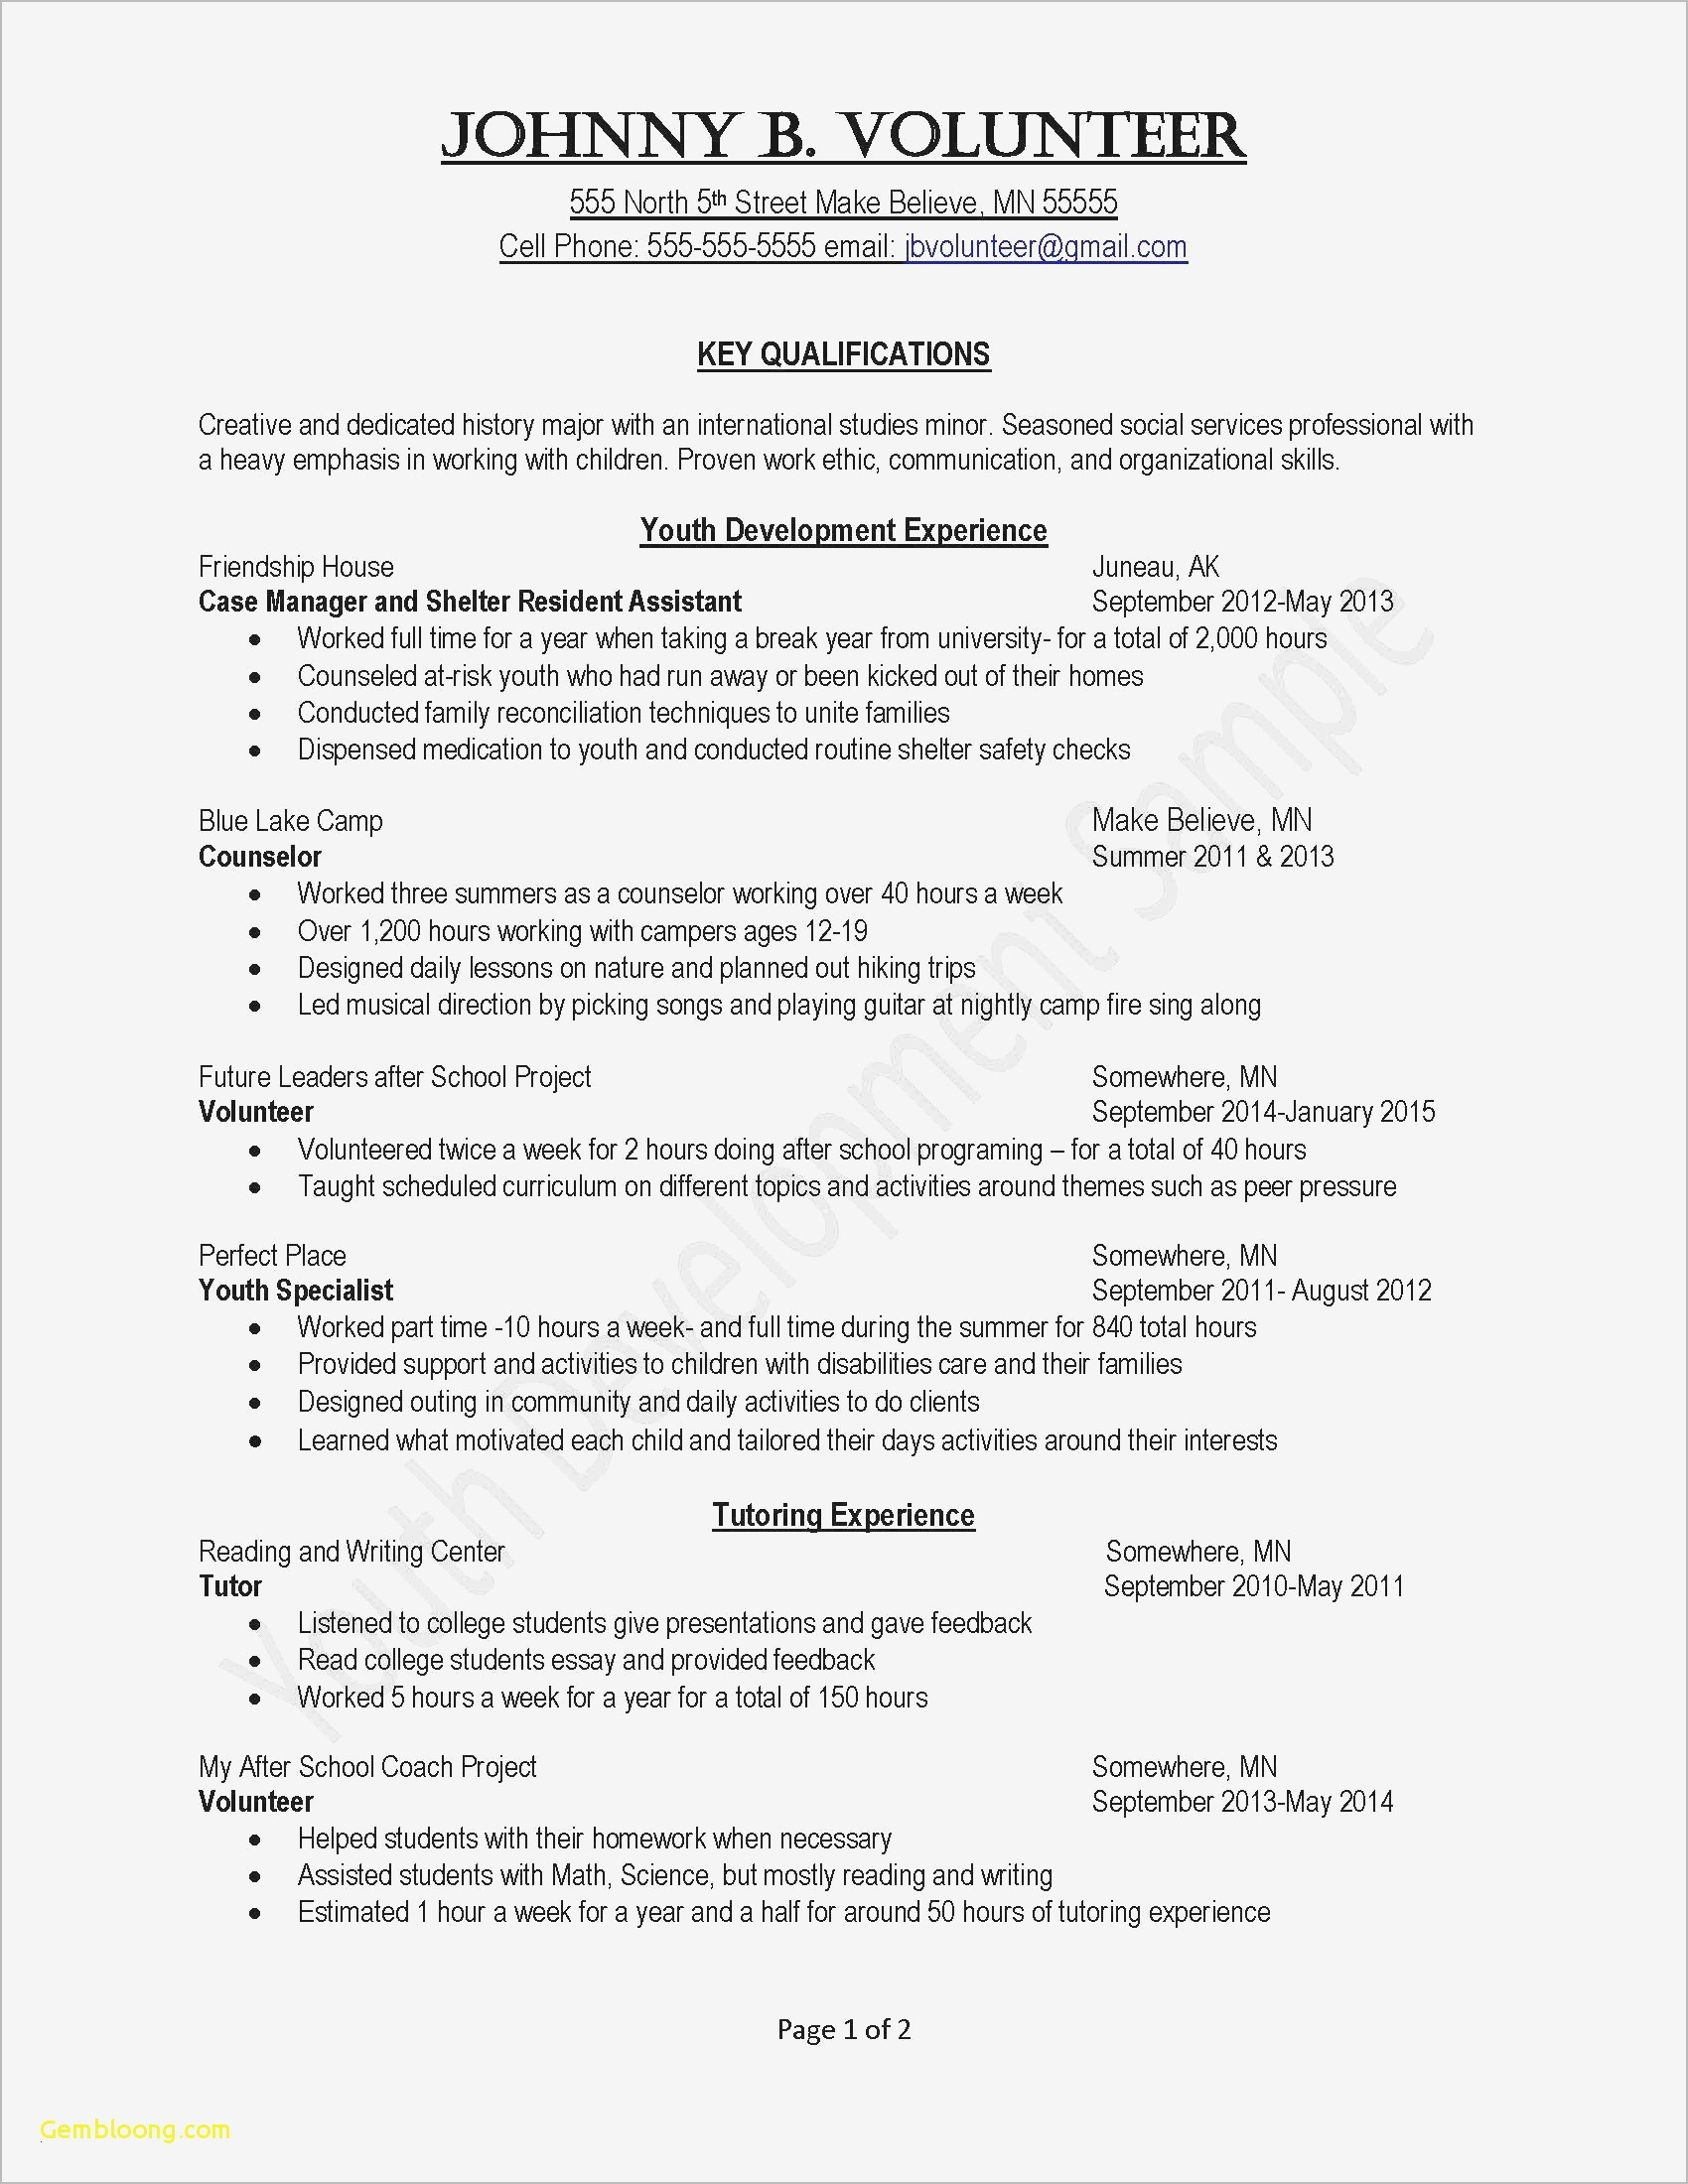 Free Sample Resume Cover Letter Template - Simple Cover Letter Examples for Resume